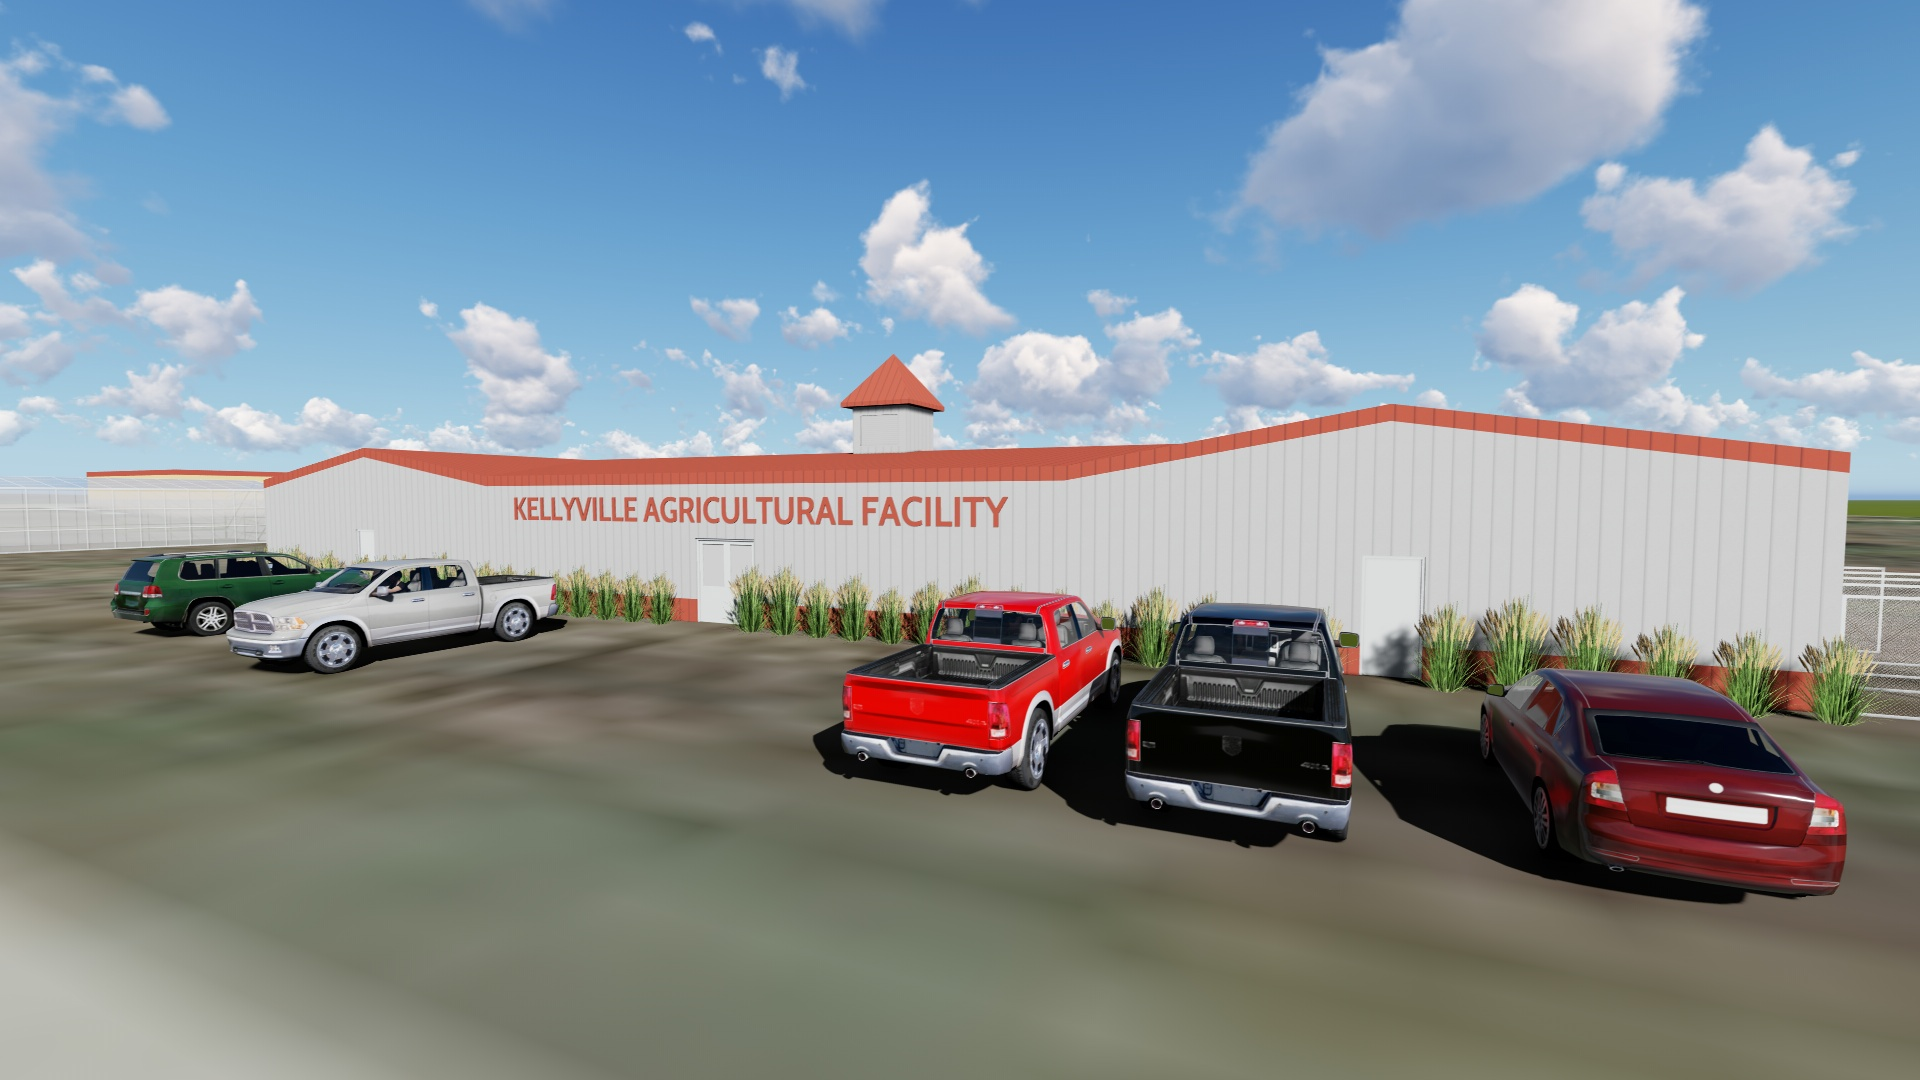 Kellyville Agricultural Facility